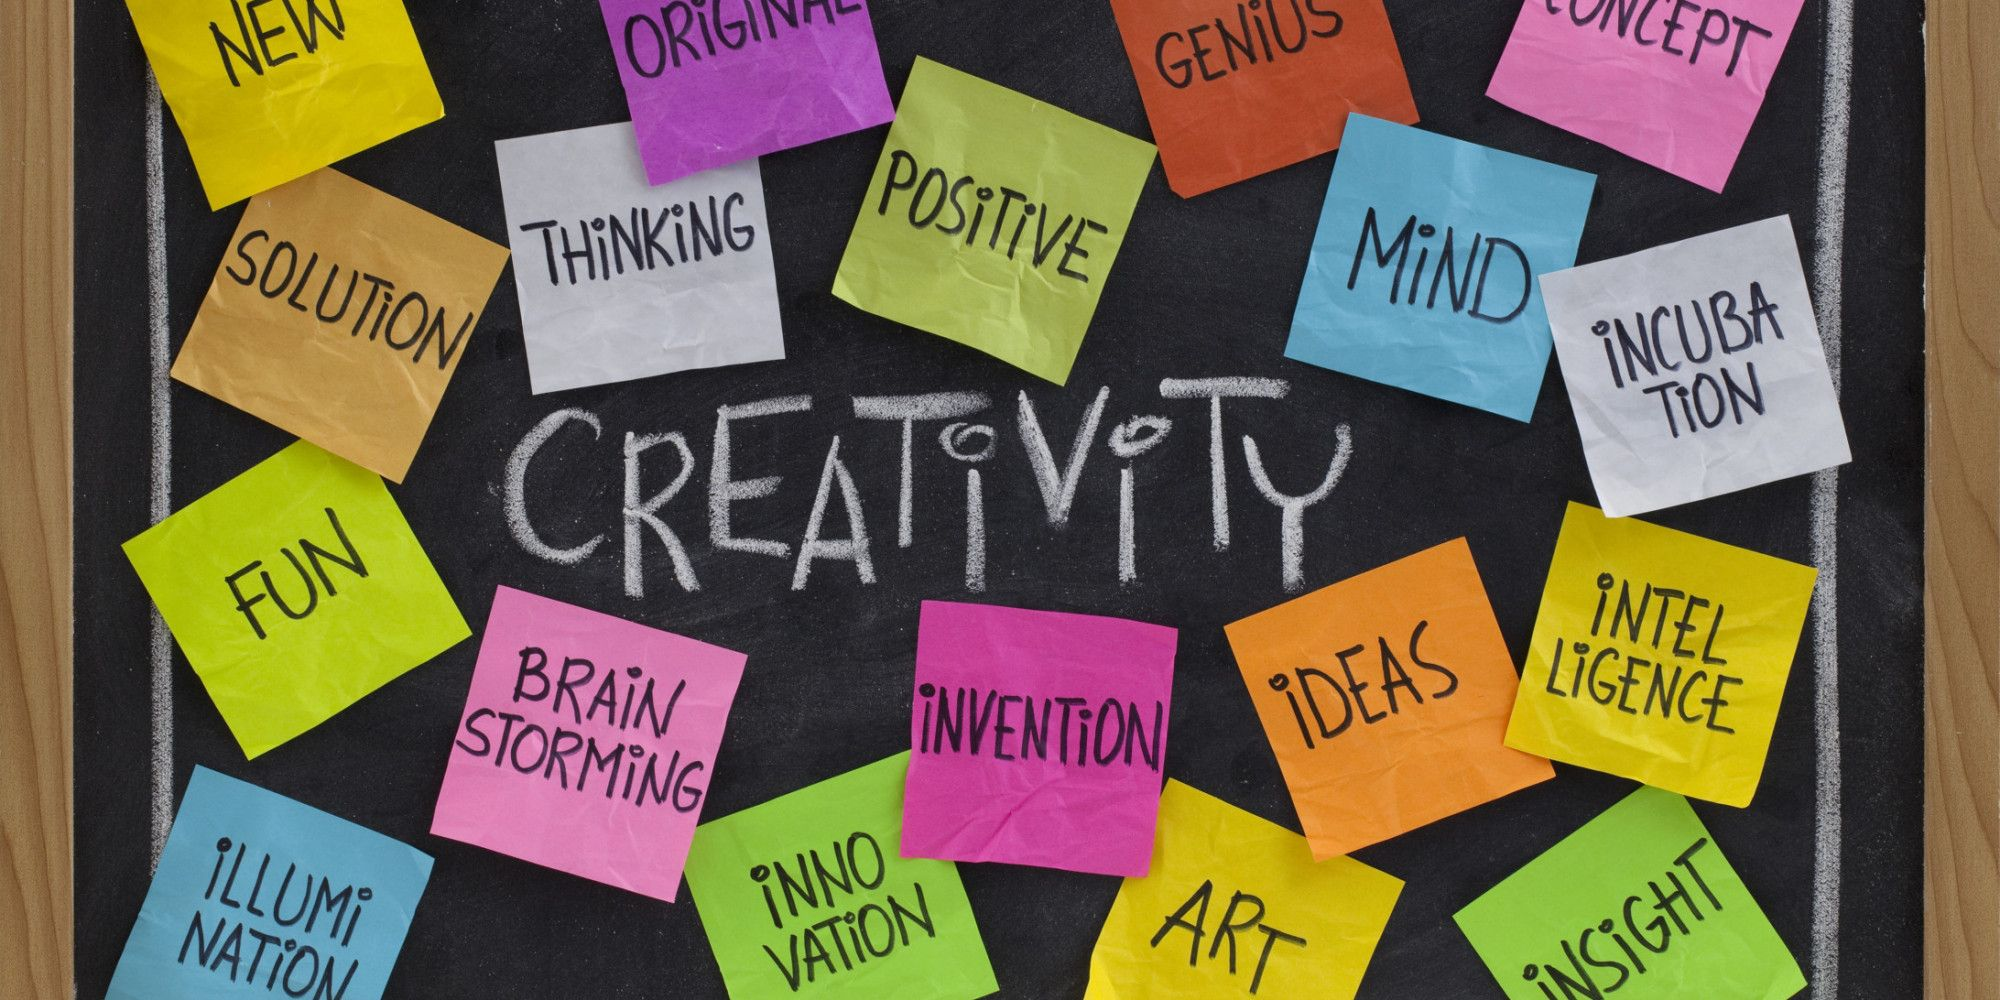 Unleash Your Creativity. Interesting points in here about environment.